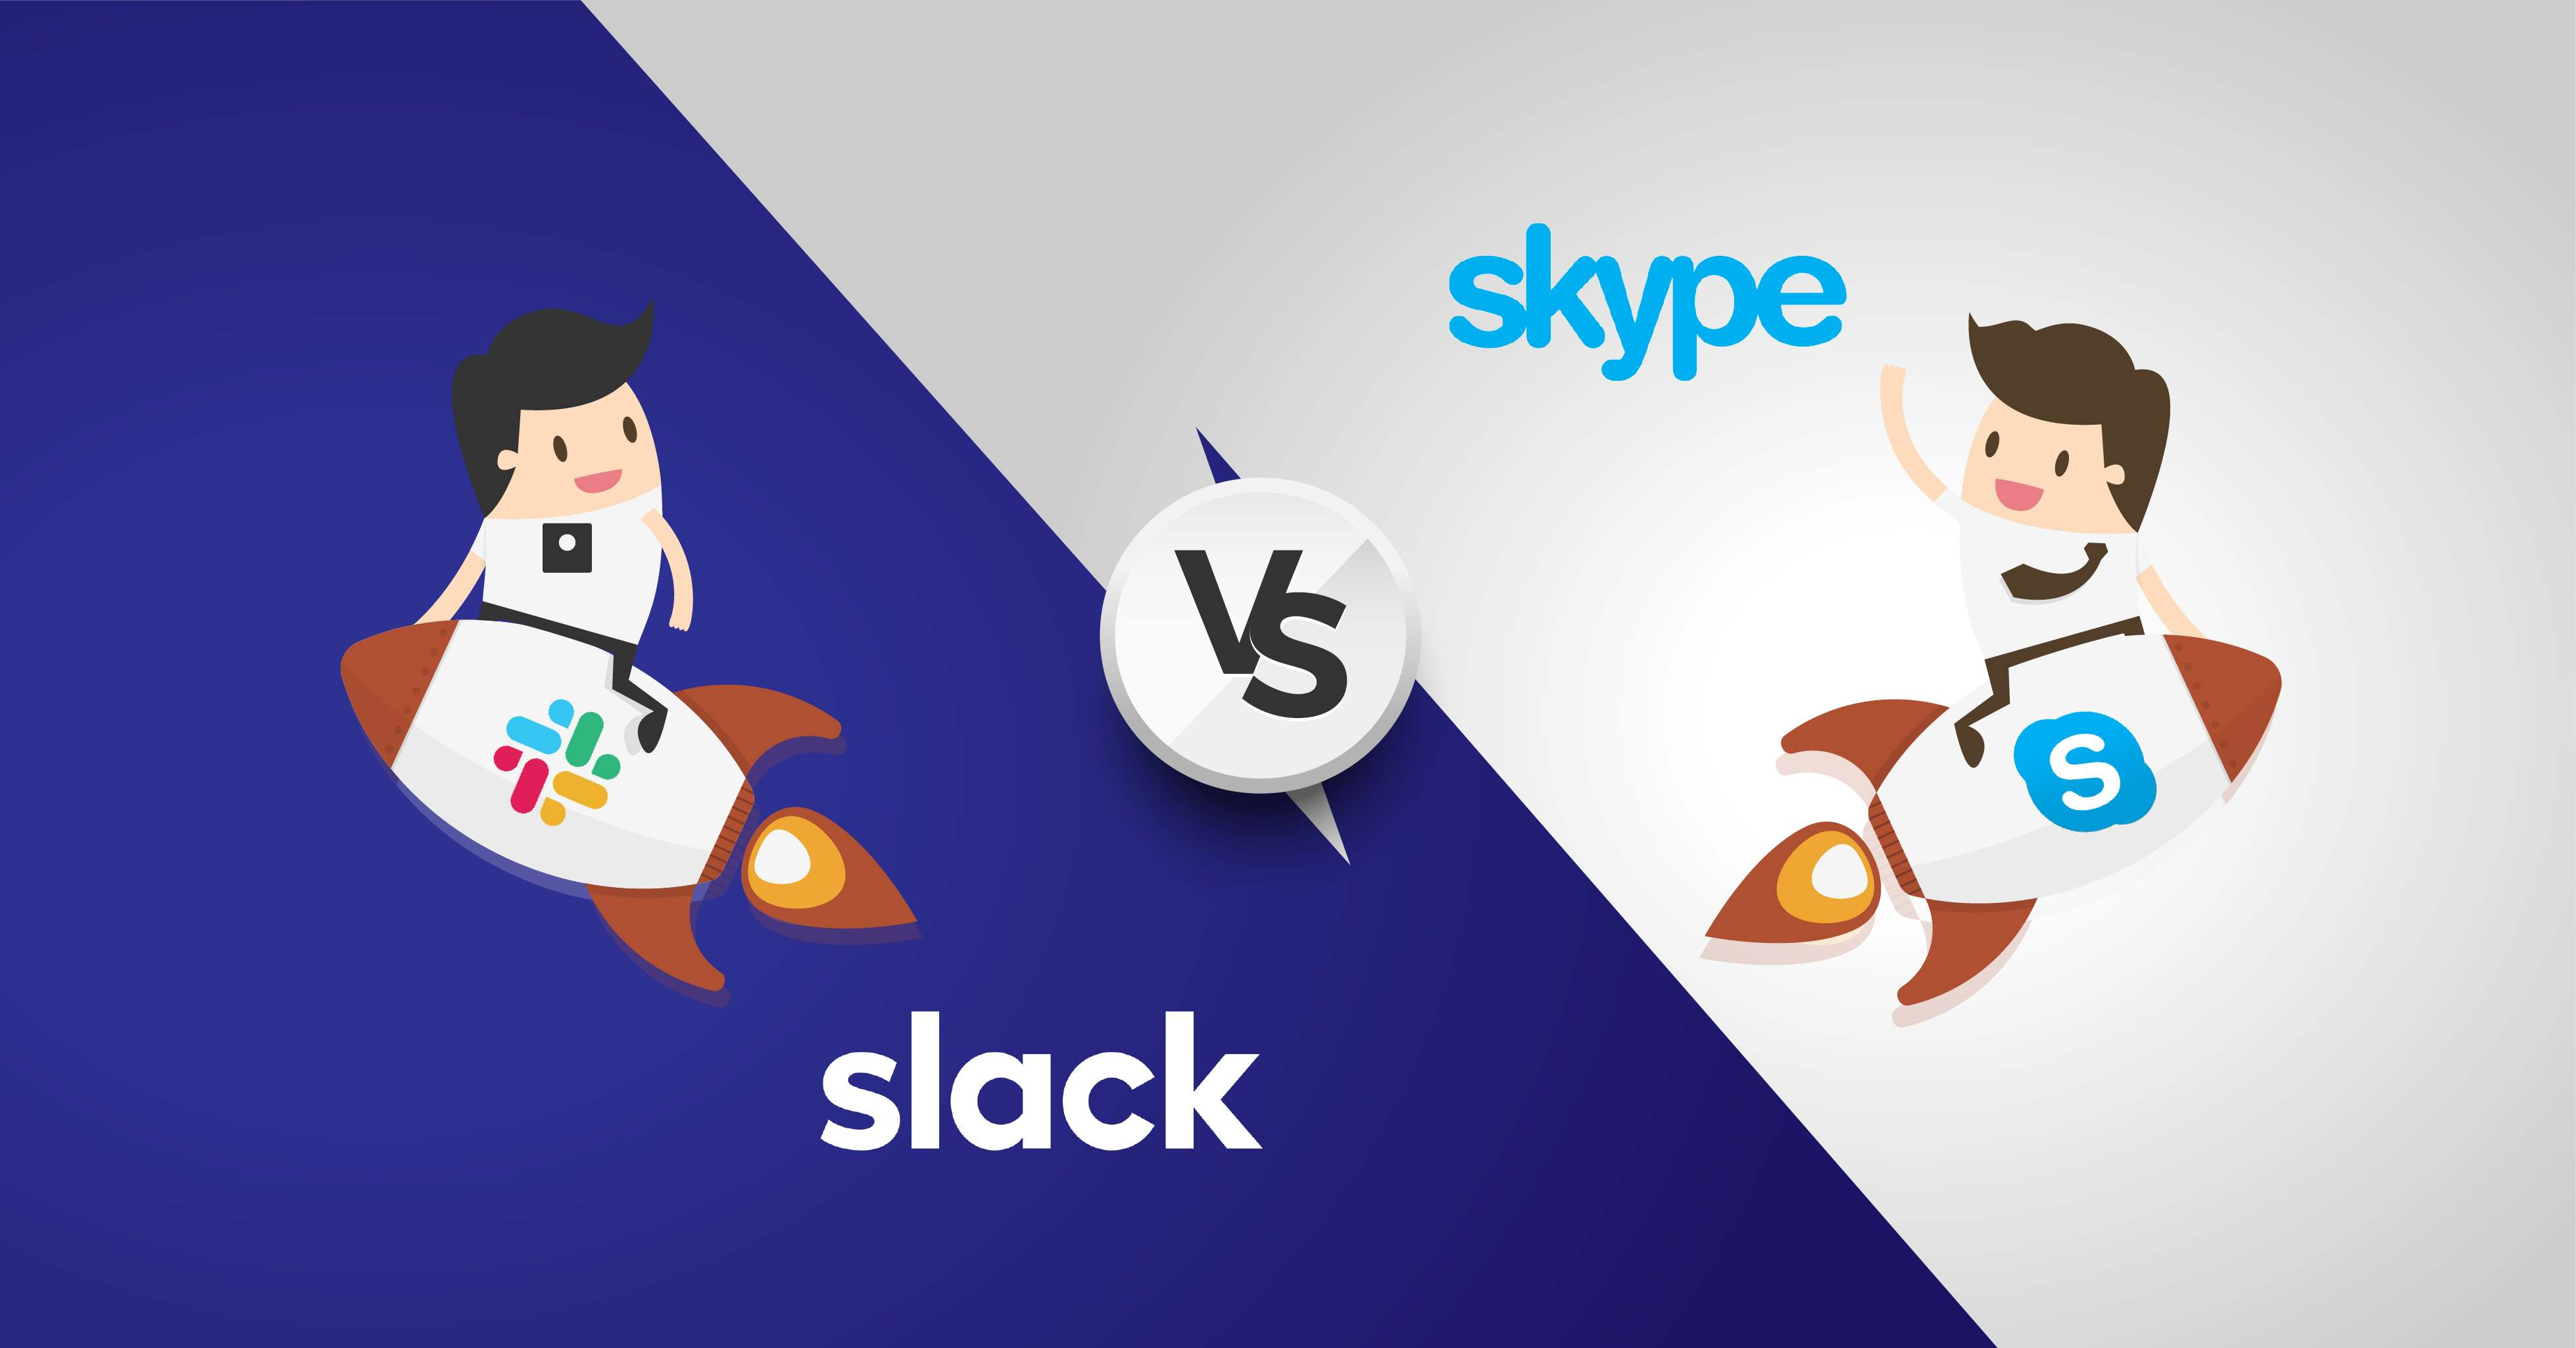 /skype-for-business-vs-slack